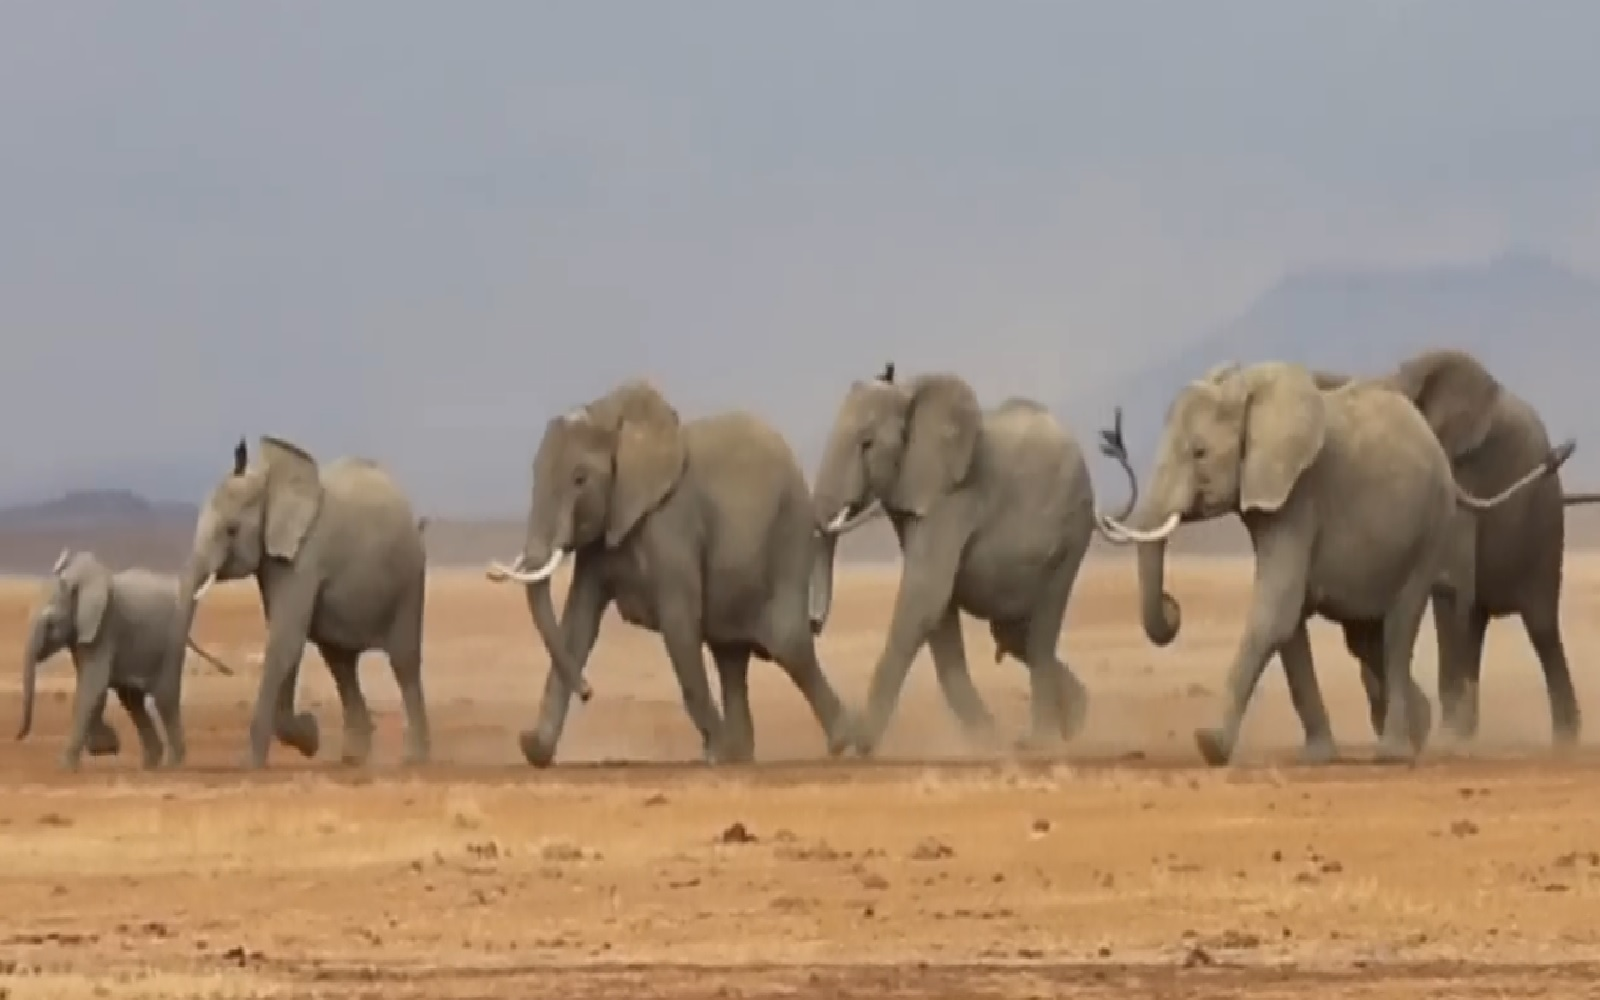 This Video of Happy Wild Elephants Running Shows Us Exactly Why These Animals Don't Belong in Zoos! This Video of Happy Wild Elephants Running Shows Us Exactly Why These Animals Don't Belong in Zoos!